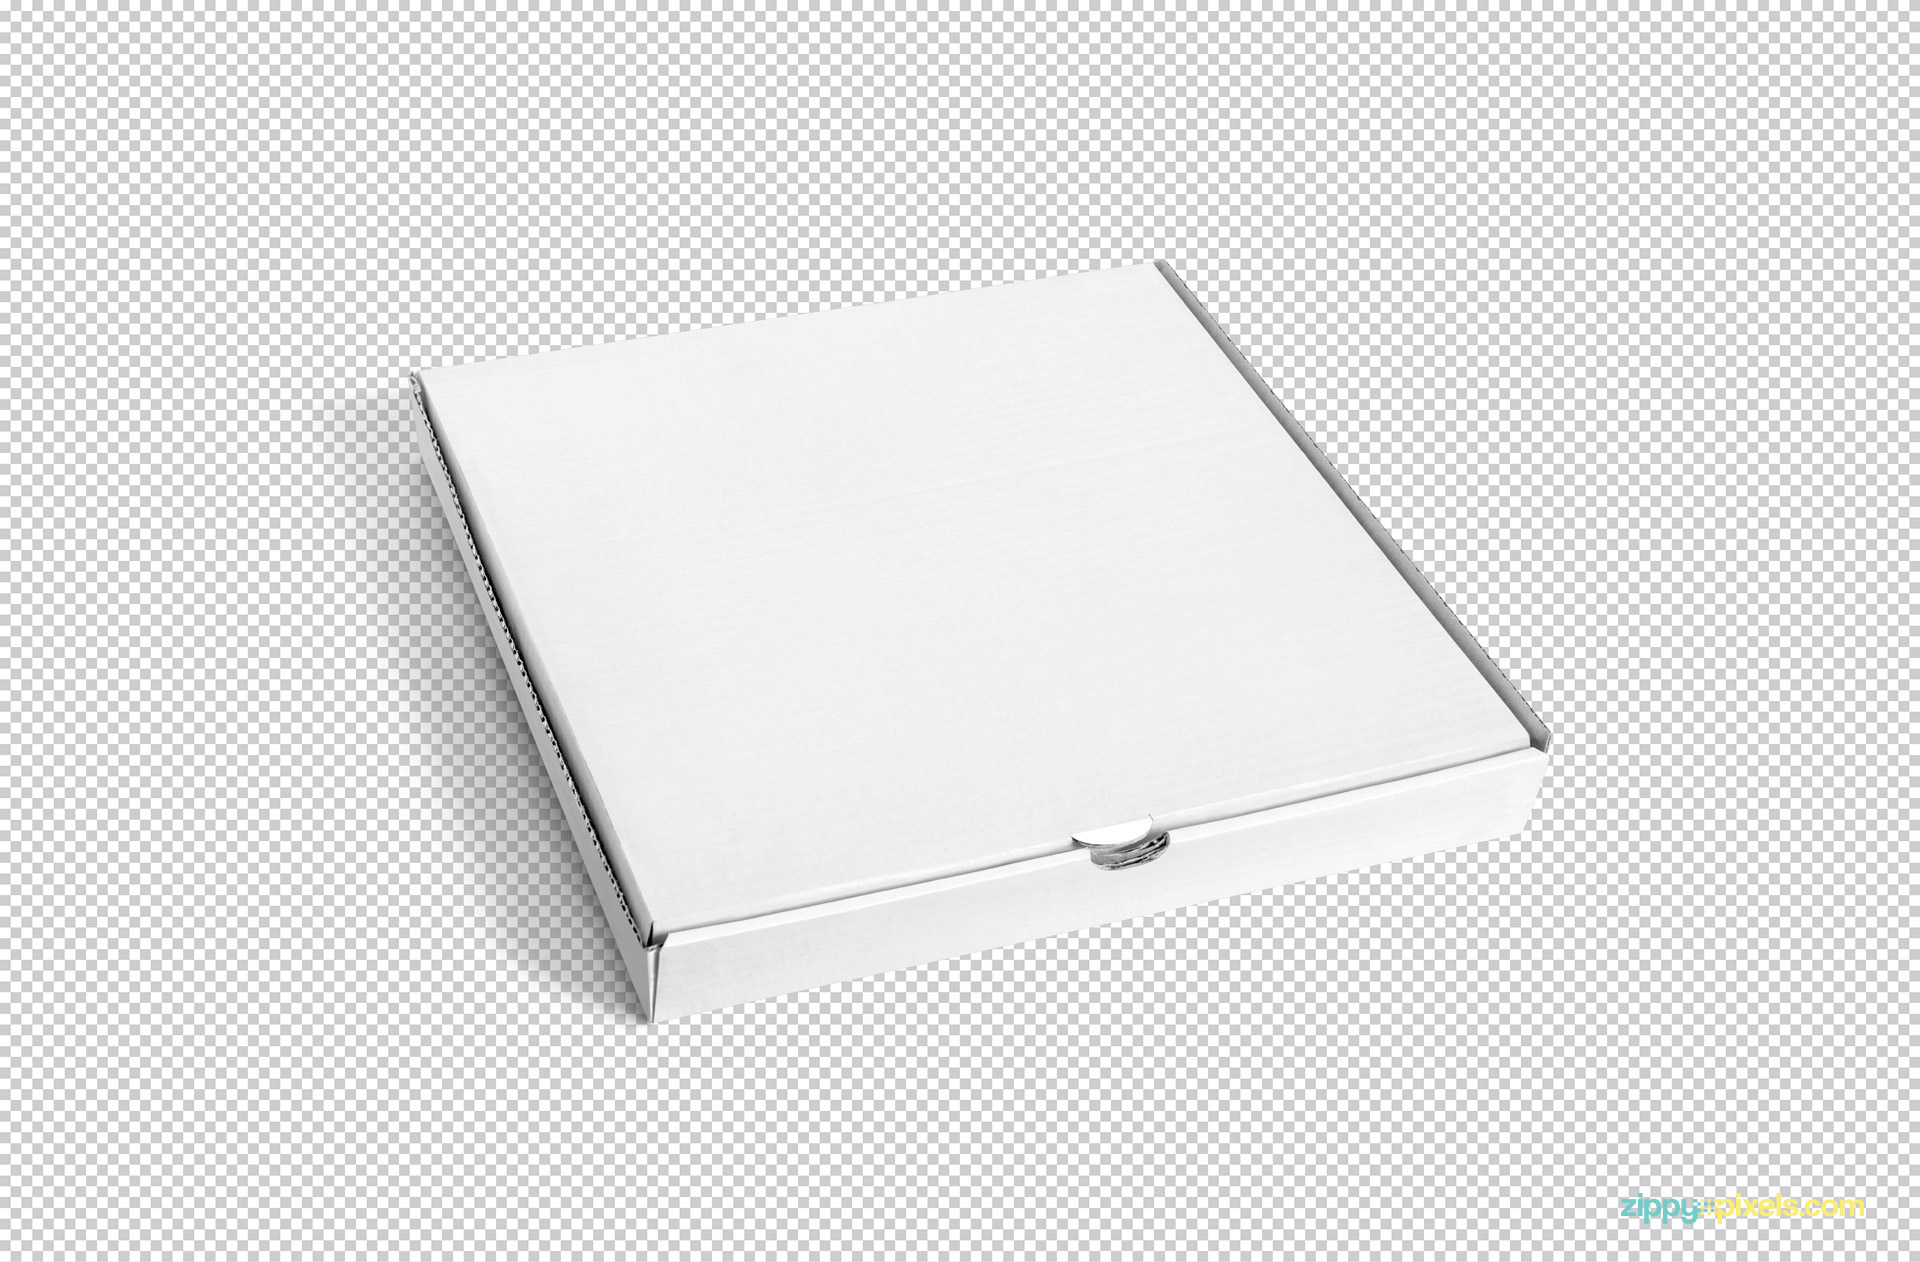 Blank white pizza box mockup PSD.